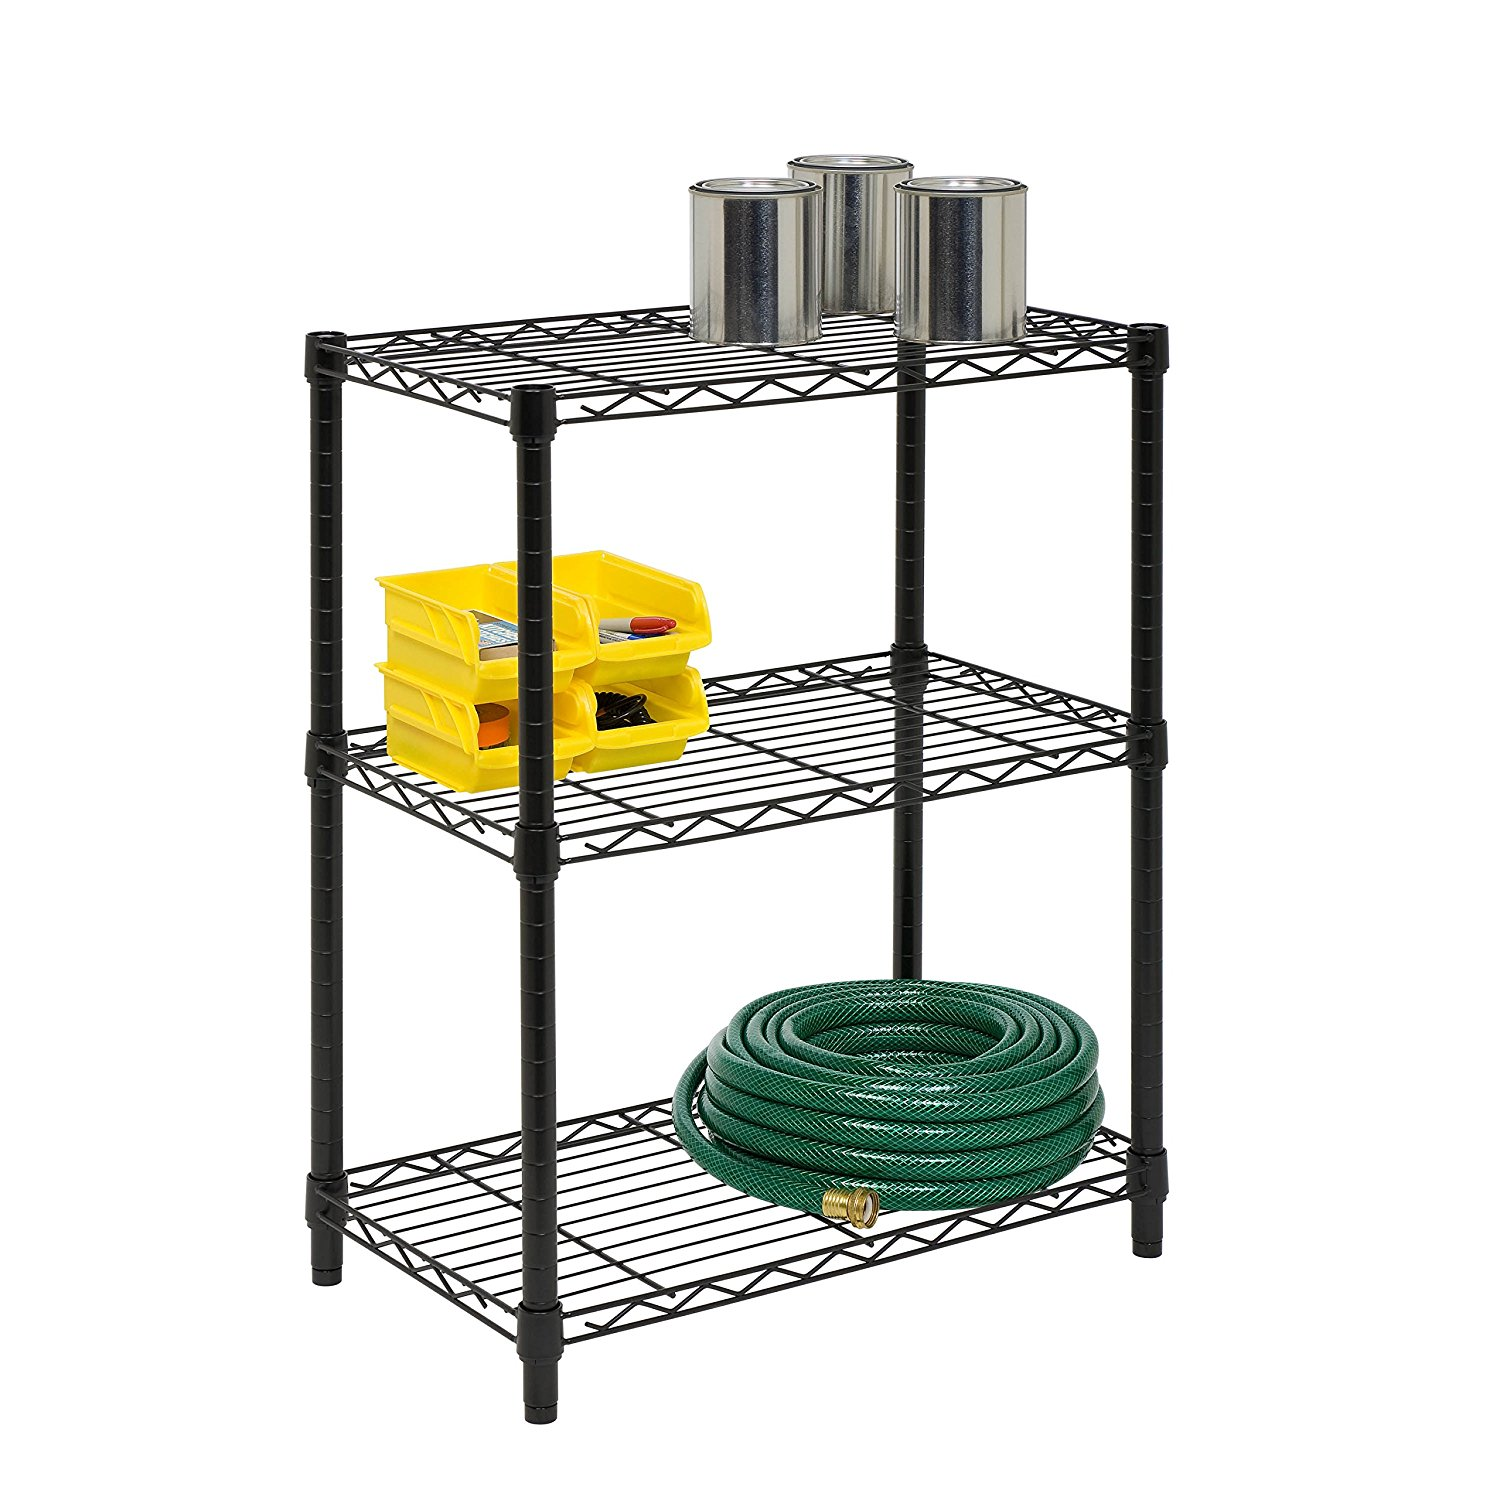 Honey-Can-Do SHF-01905 Adjustable Storage Shelving, 250-Pounds Per Shelf Black, 3-Tier, Only $17.92